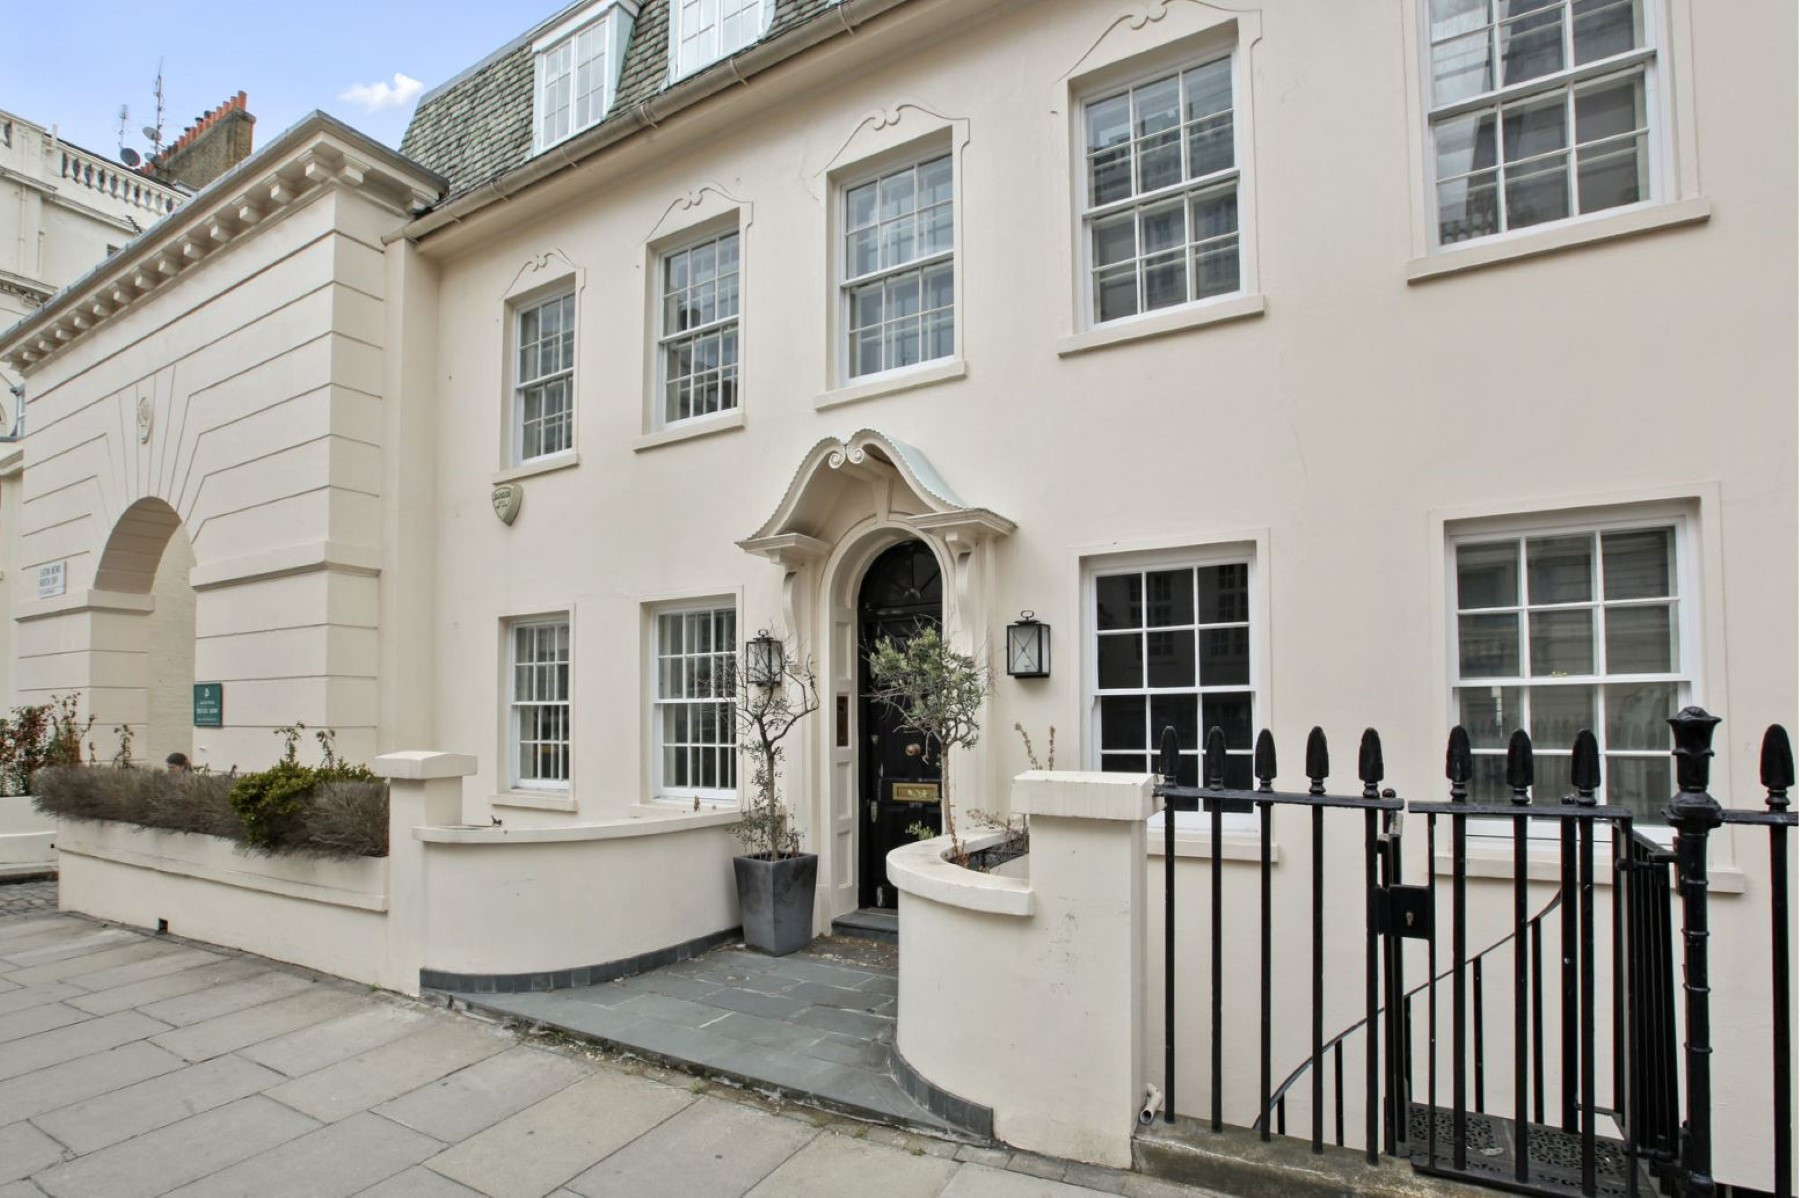 Single Family Home for Sale at Lyall Street London, England, United Kingdom